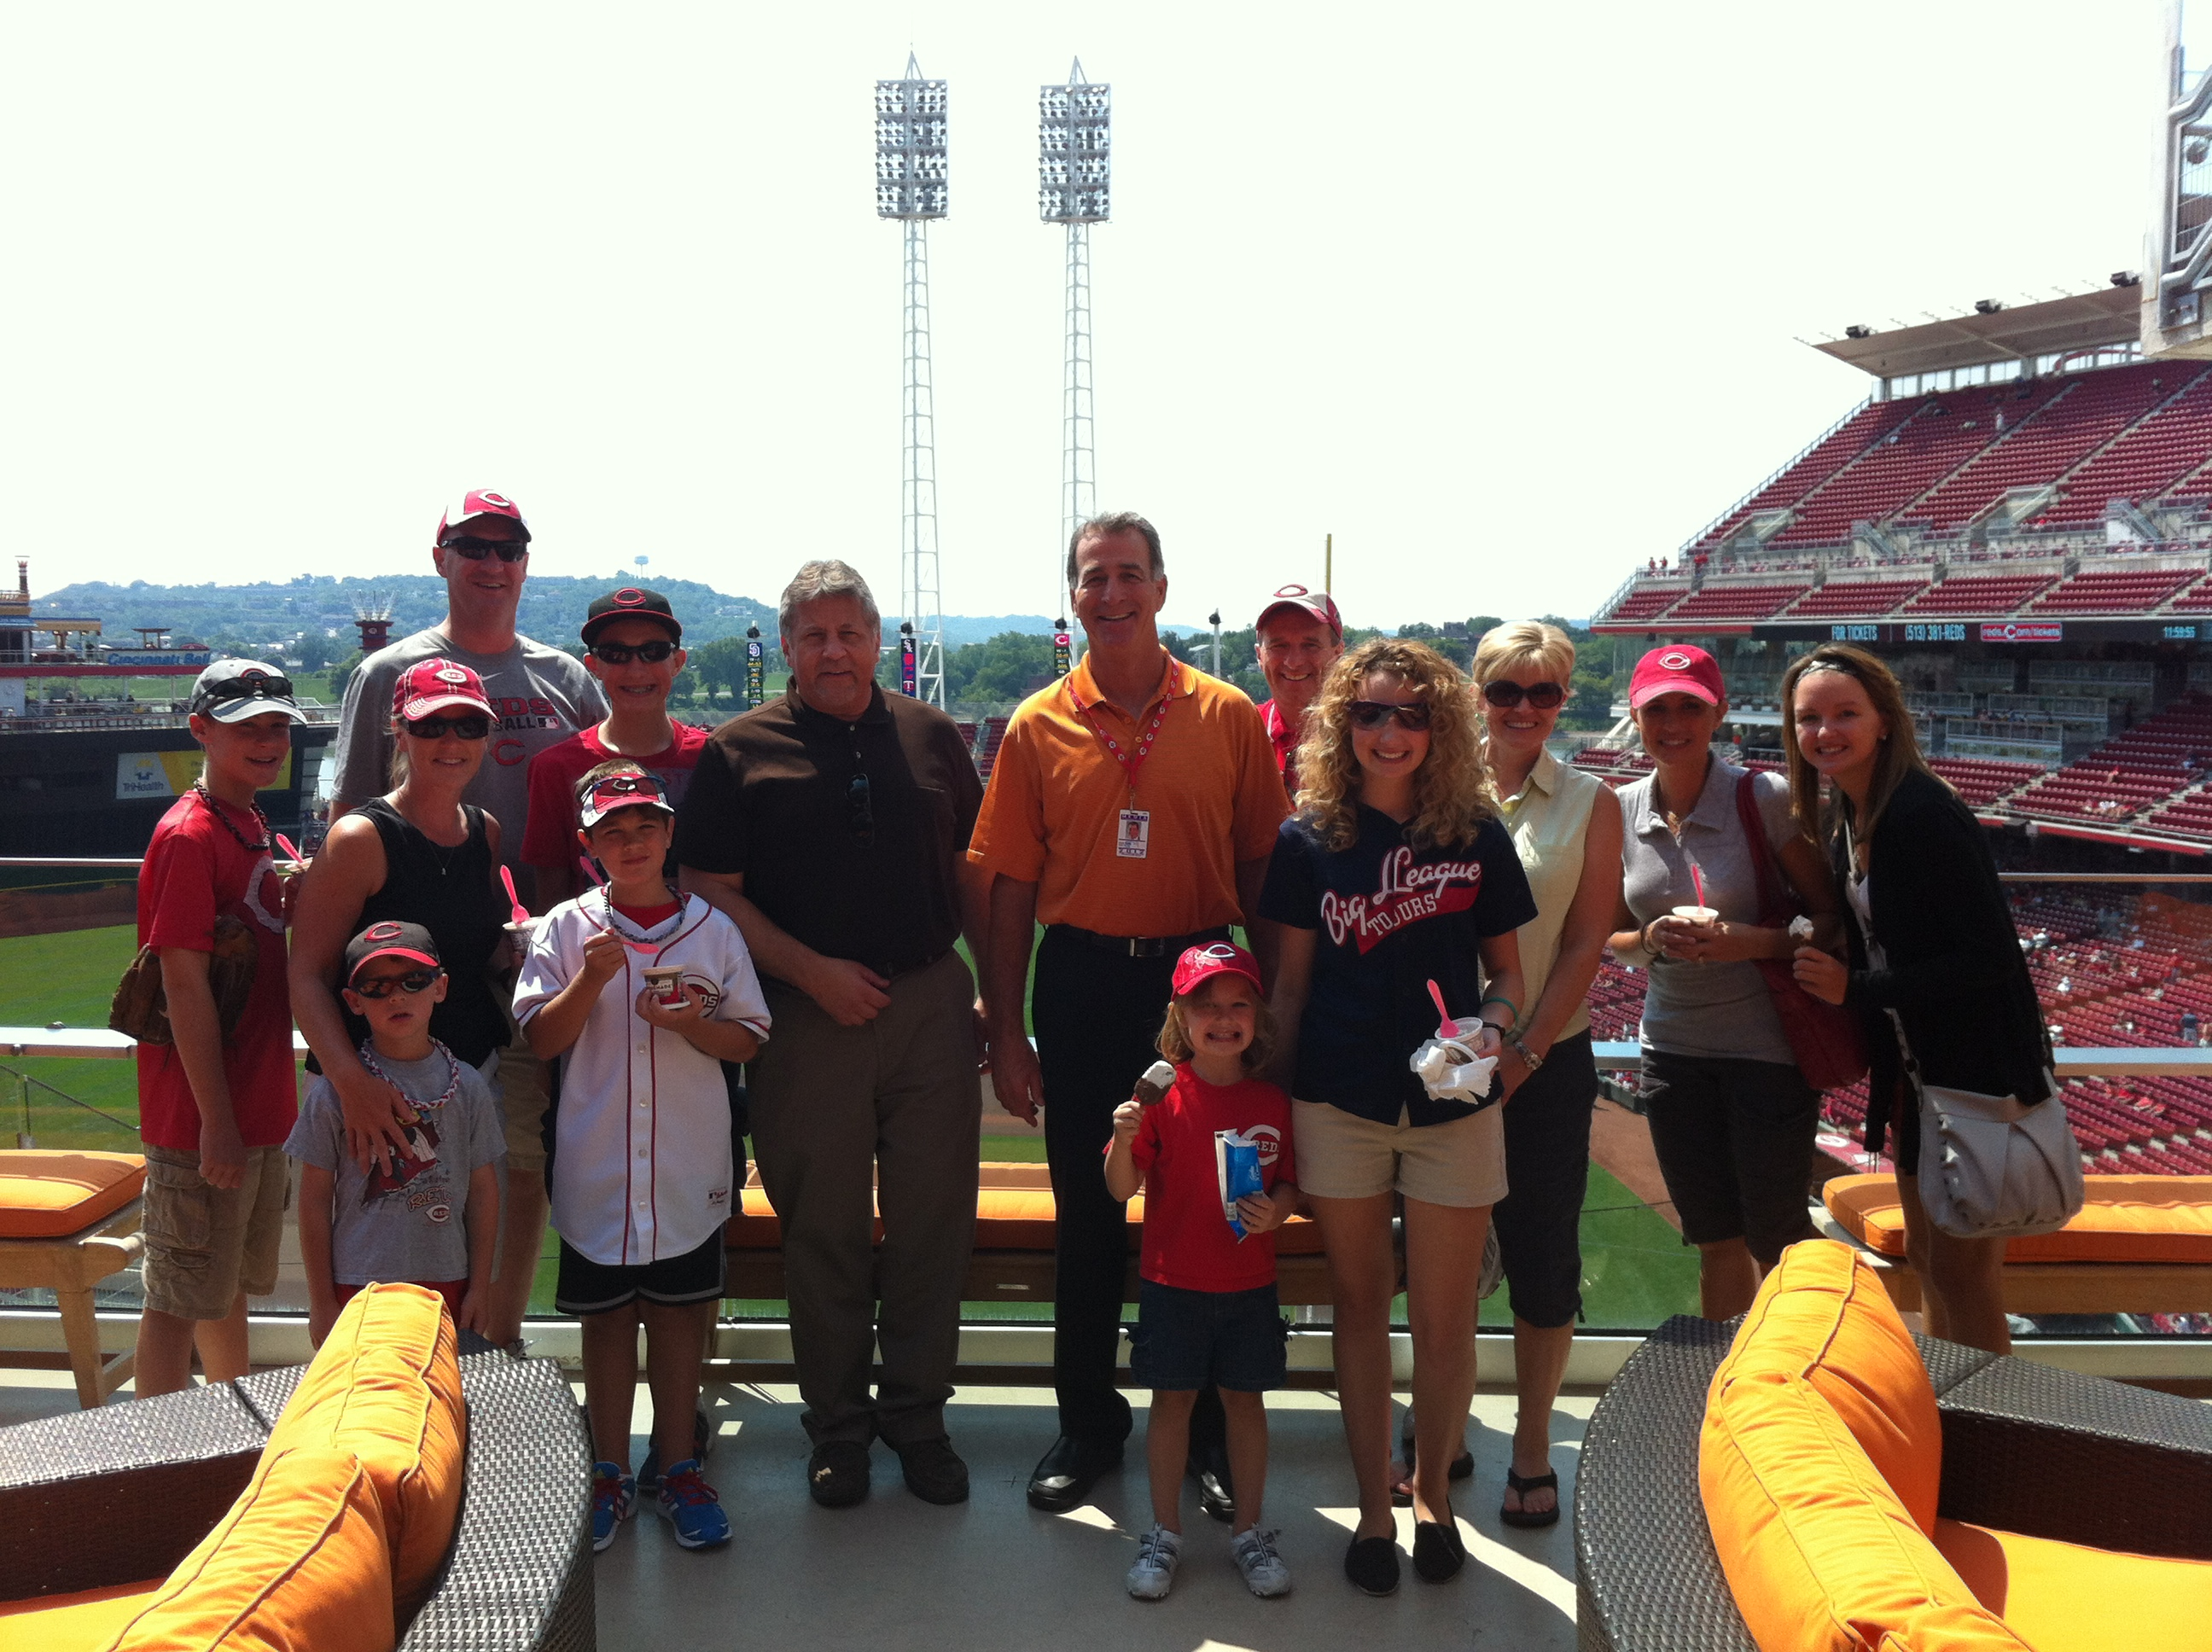 baseball road trip,baseball tour,great american ballpark,cincinnati,reds